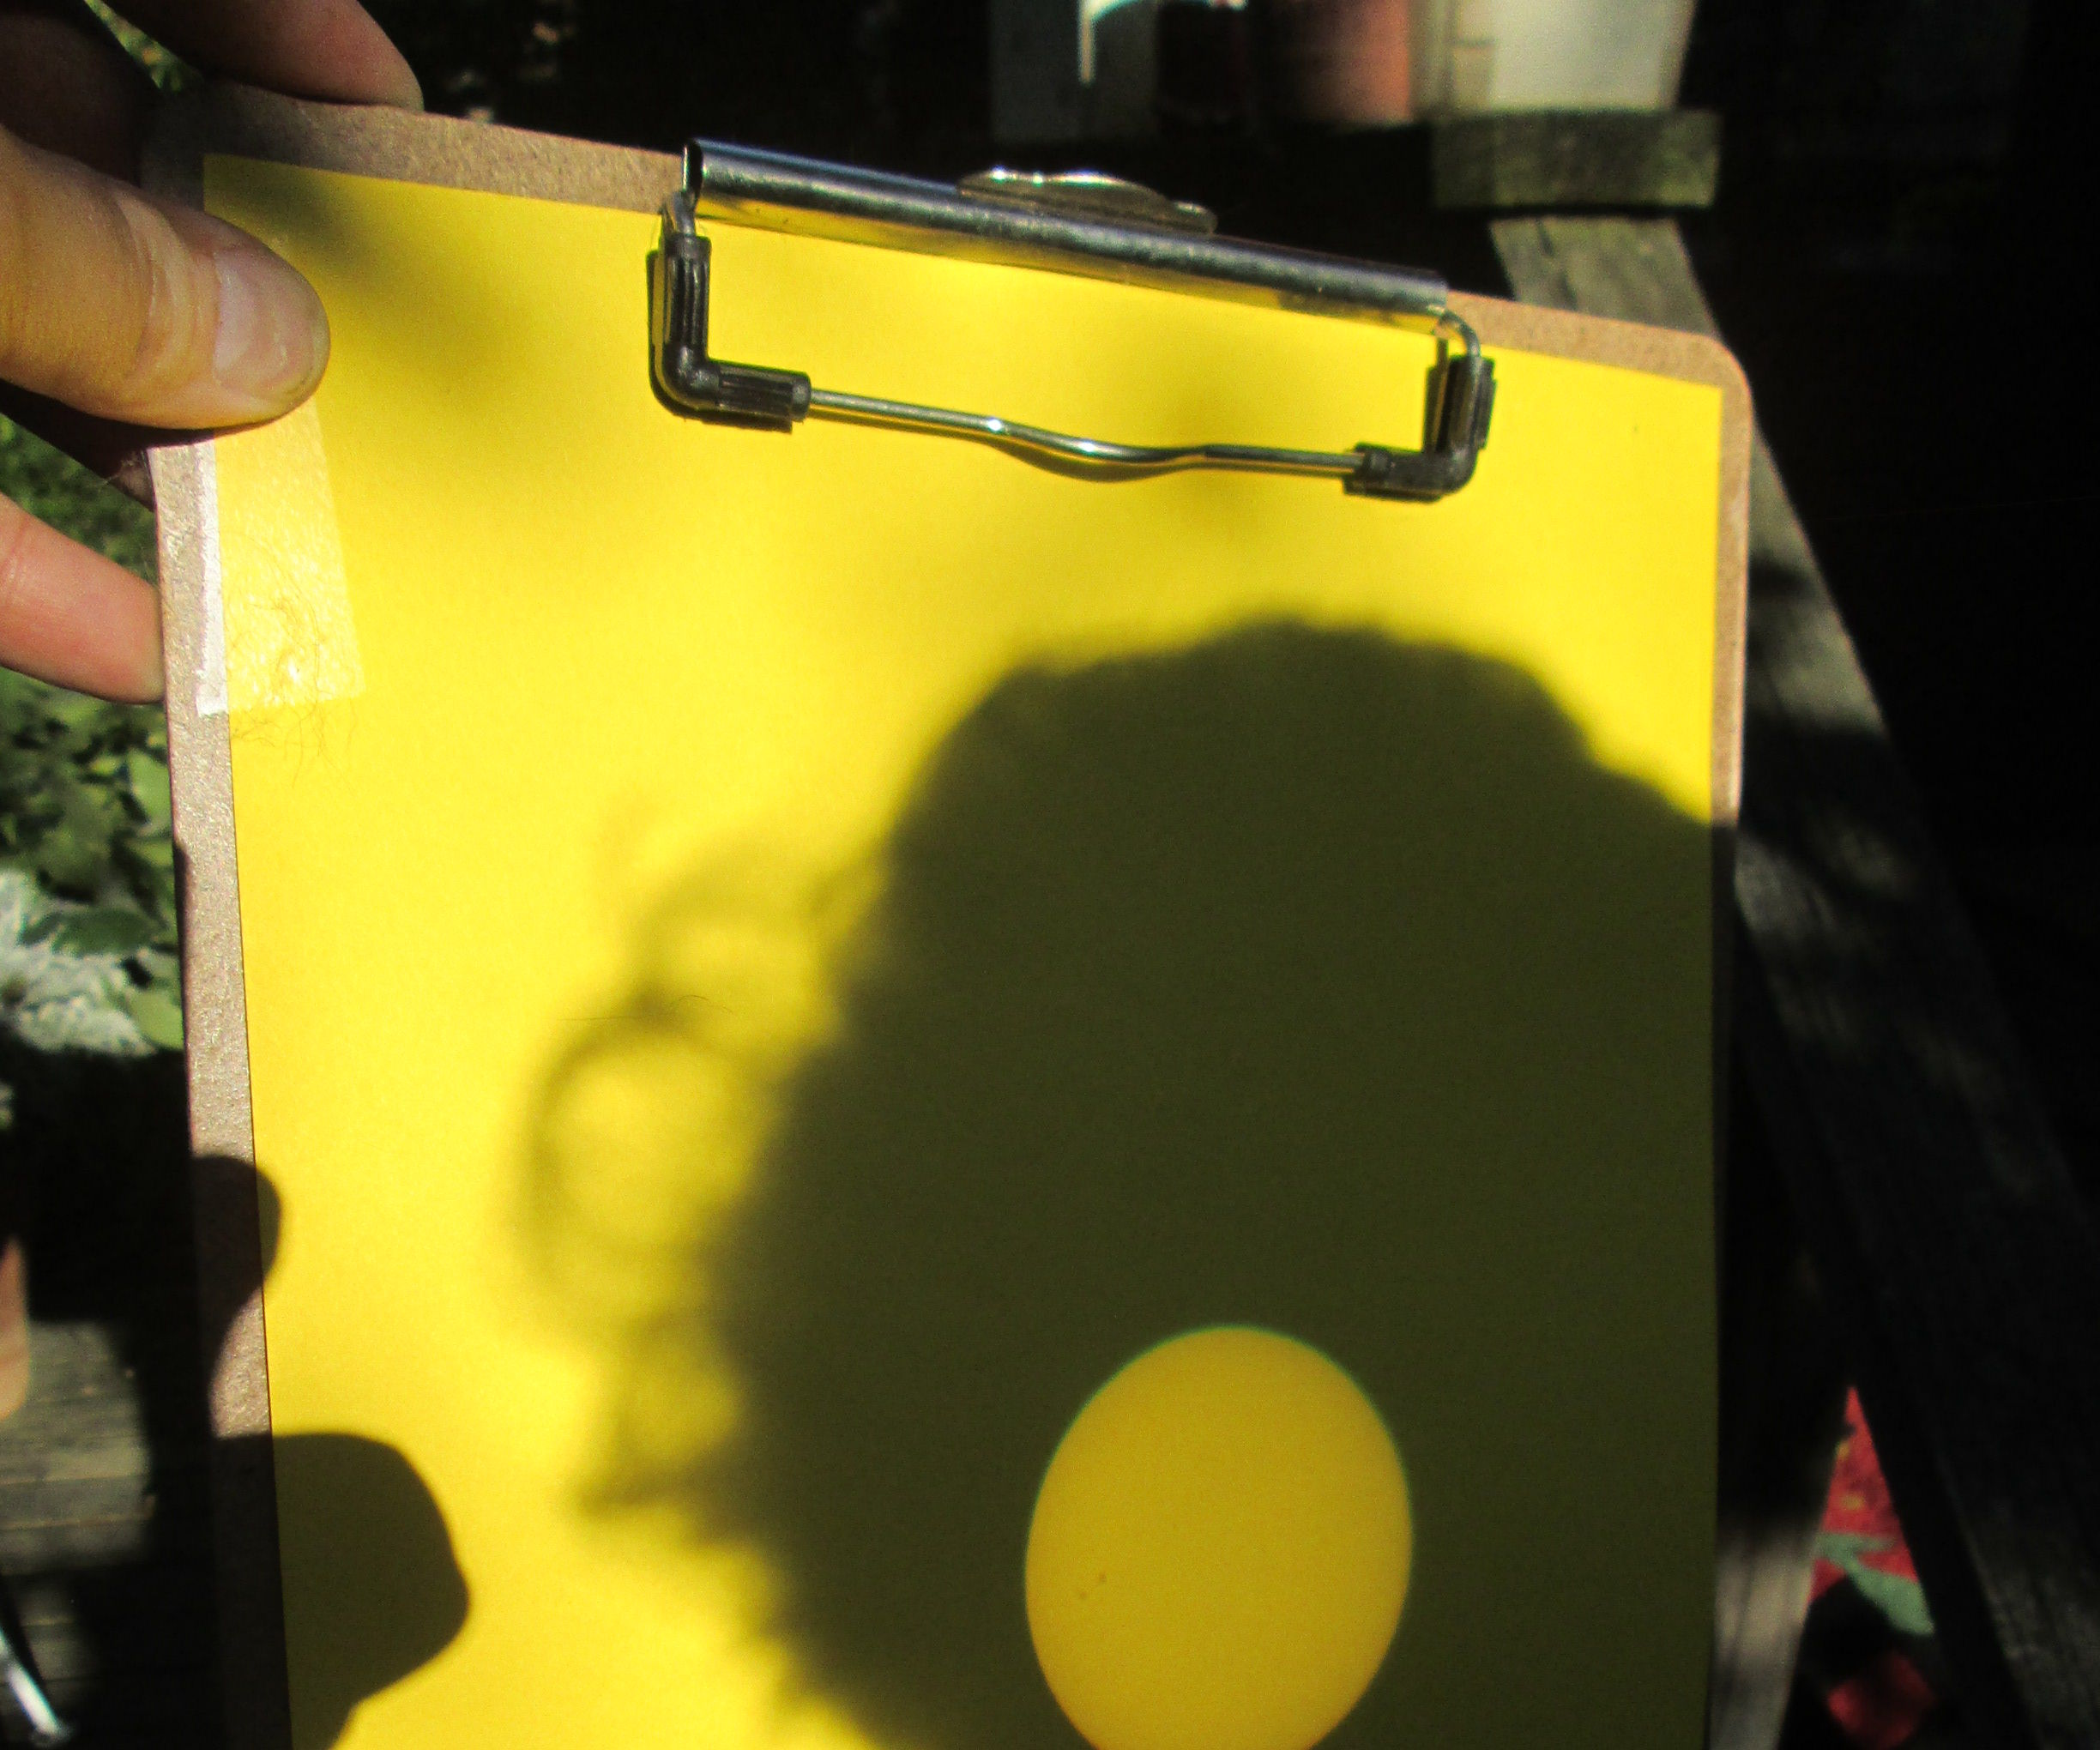 Sun Viewer: Observe the Sun safely with binoculars